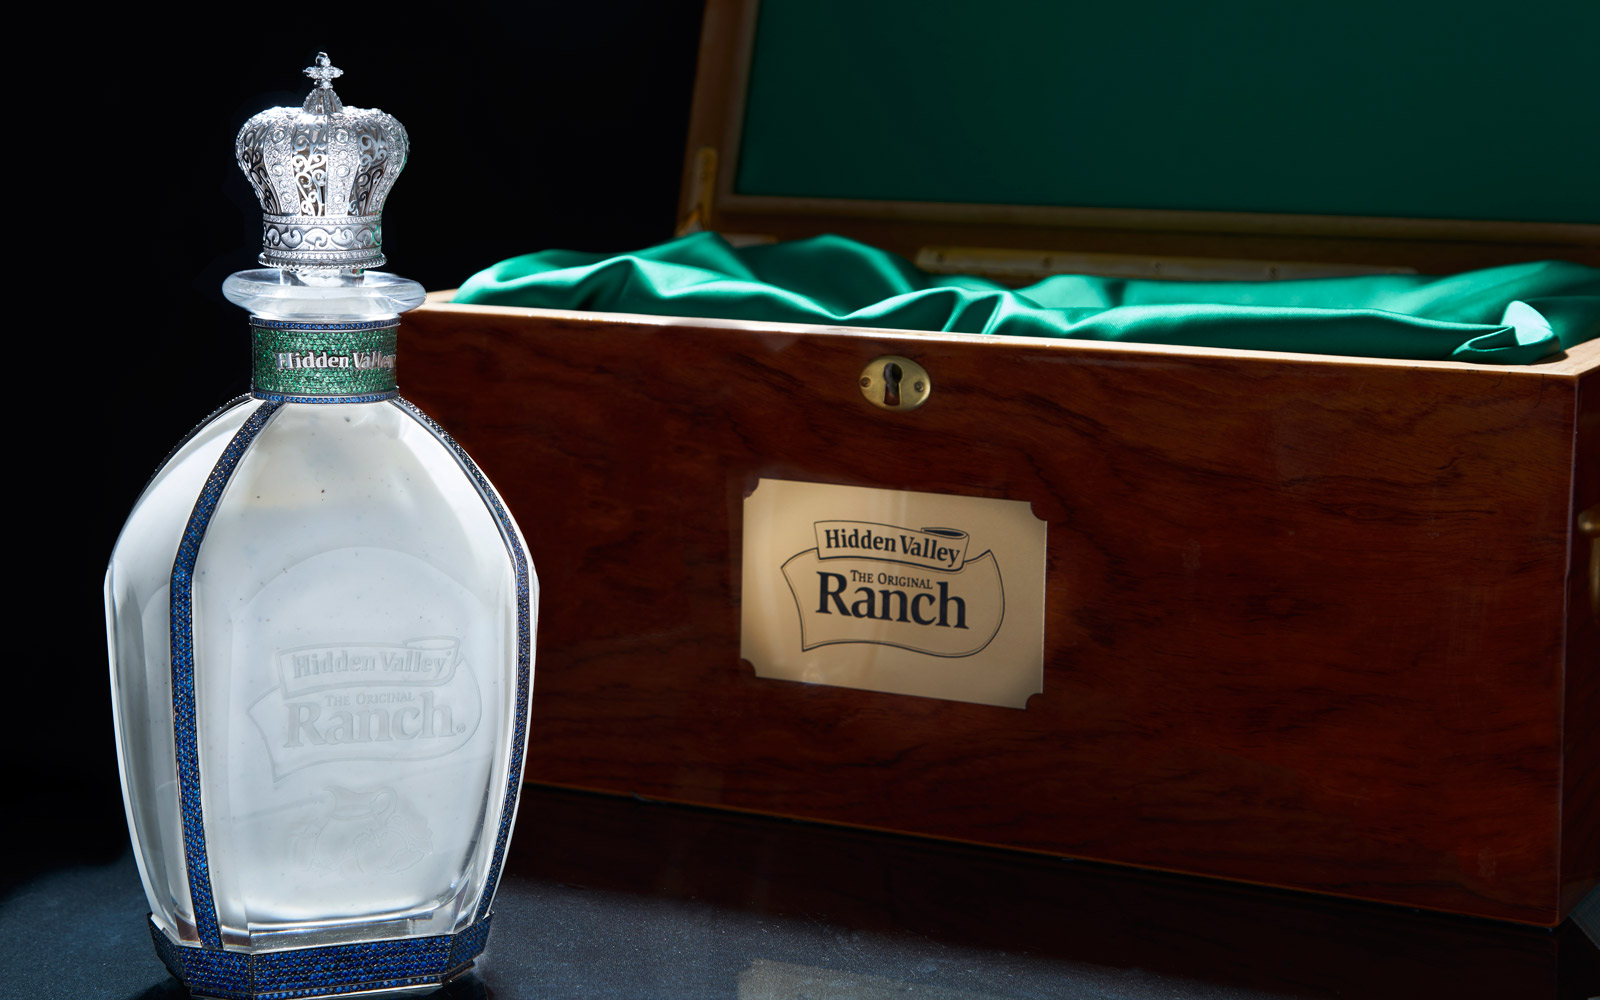 Hidden Valley Is Giving Away a $35K Bottle of Ranch Dressing to Celebrate the Royal Wedding